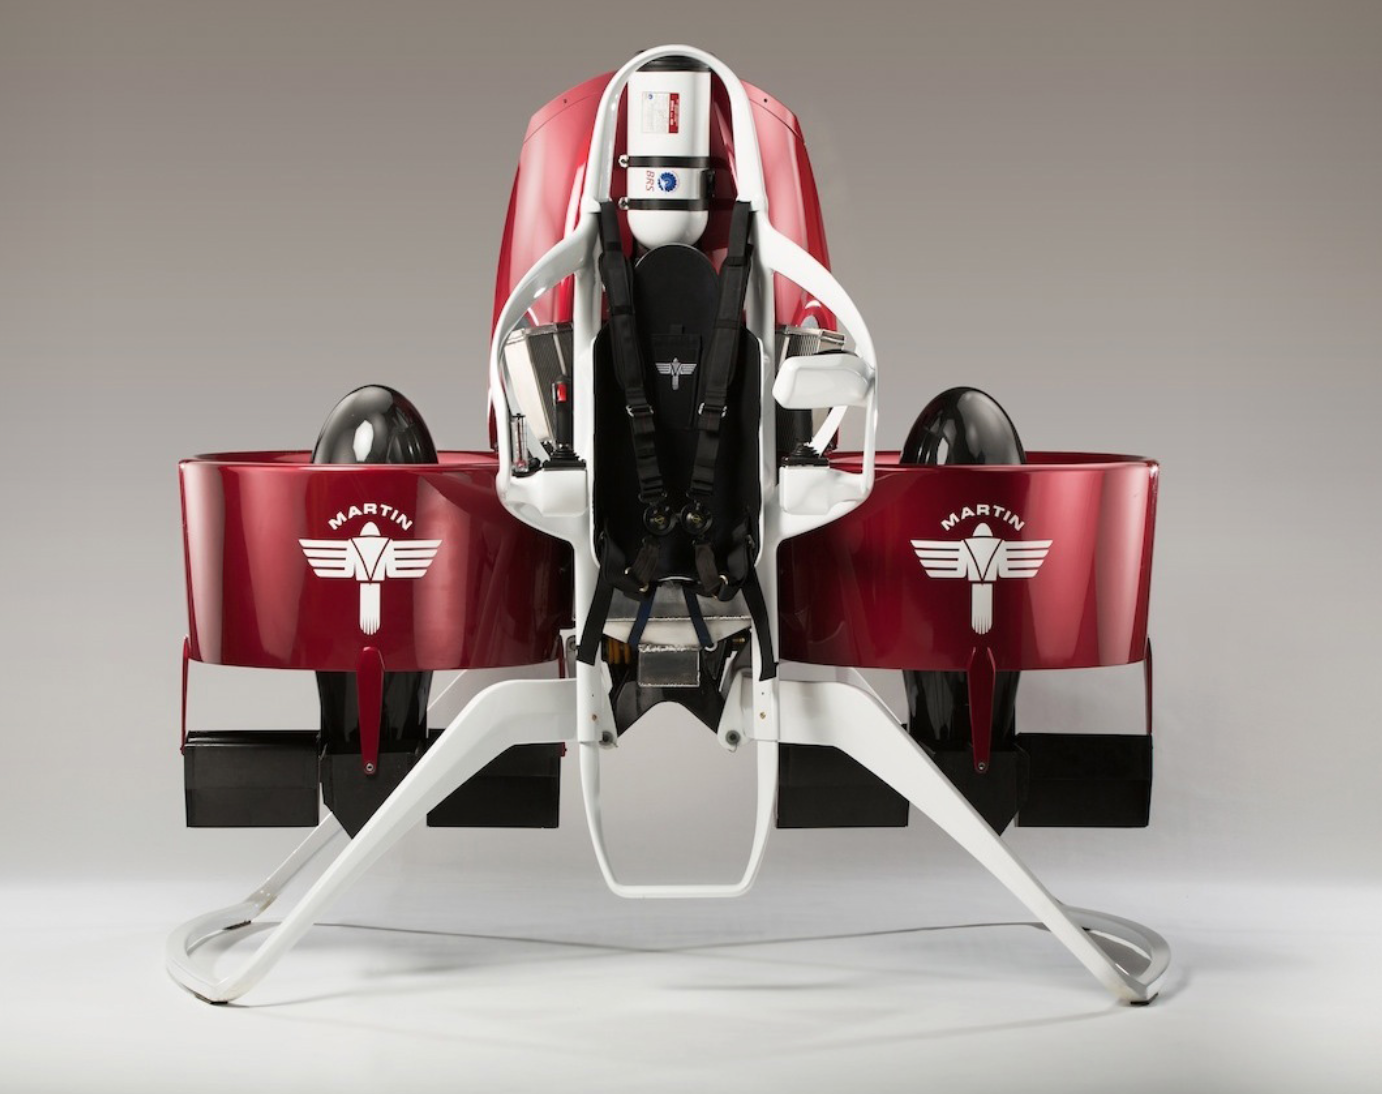 This personal jetpack could be used by personal responders by next year, and will also be available for personal use for a pretty penny.